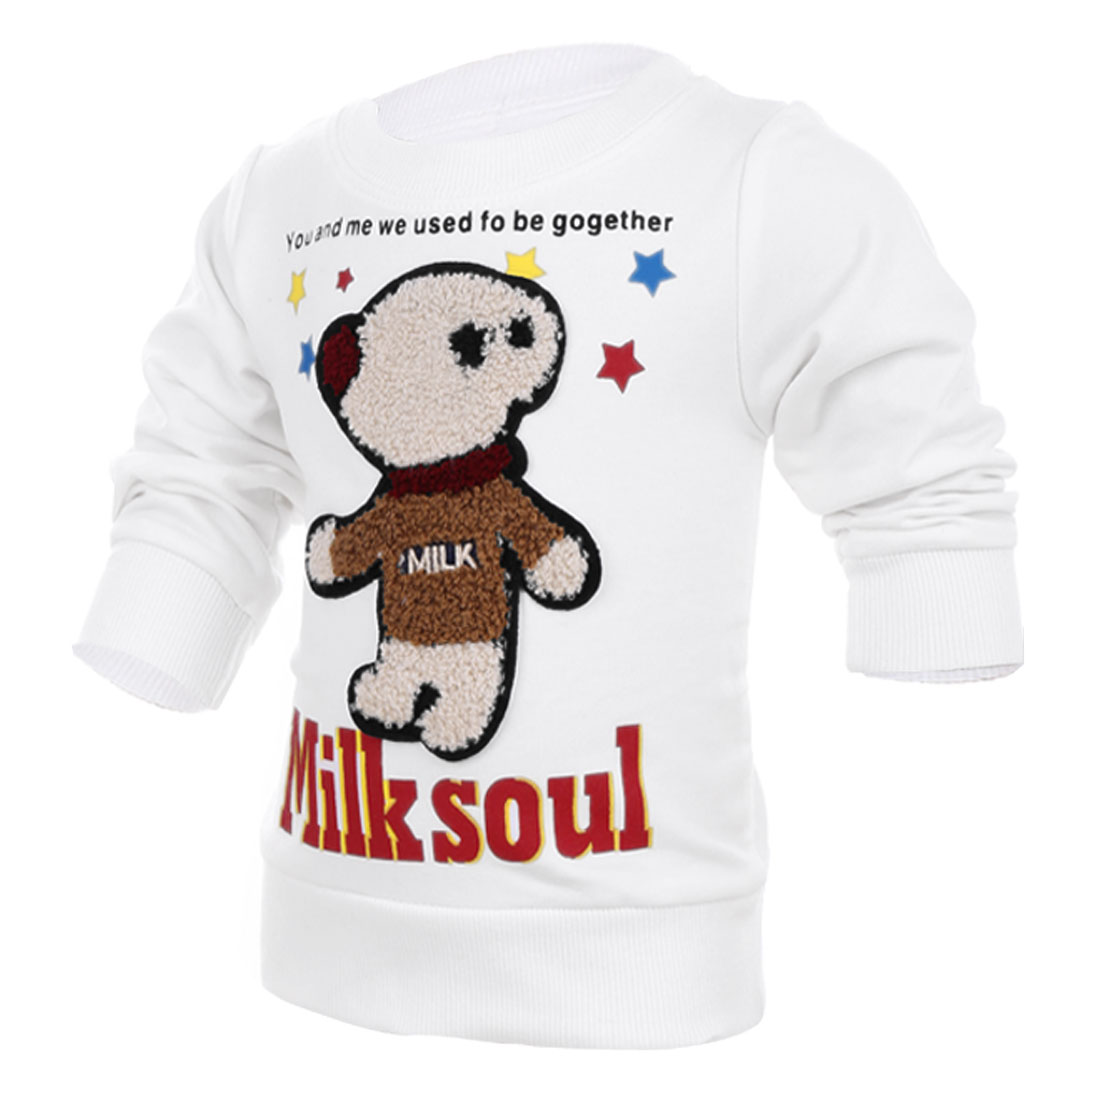 Pullover Long Sleeve Cartoon Bear Panel Front White Top Shirt for Kids 4T